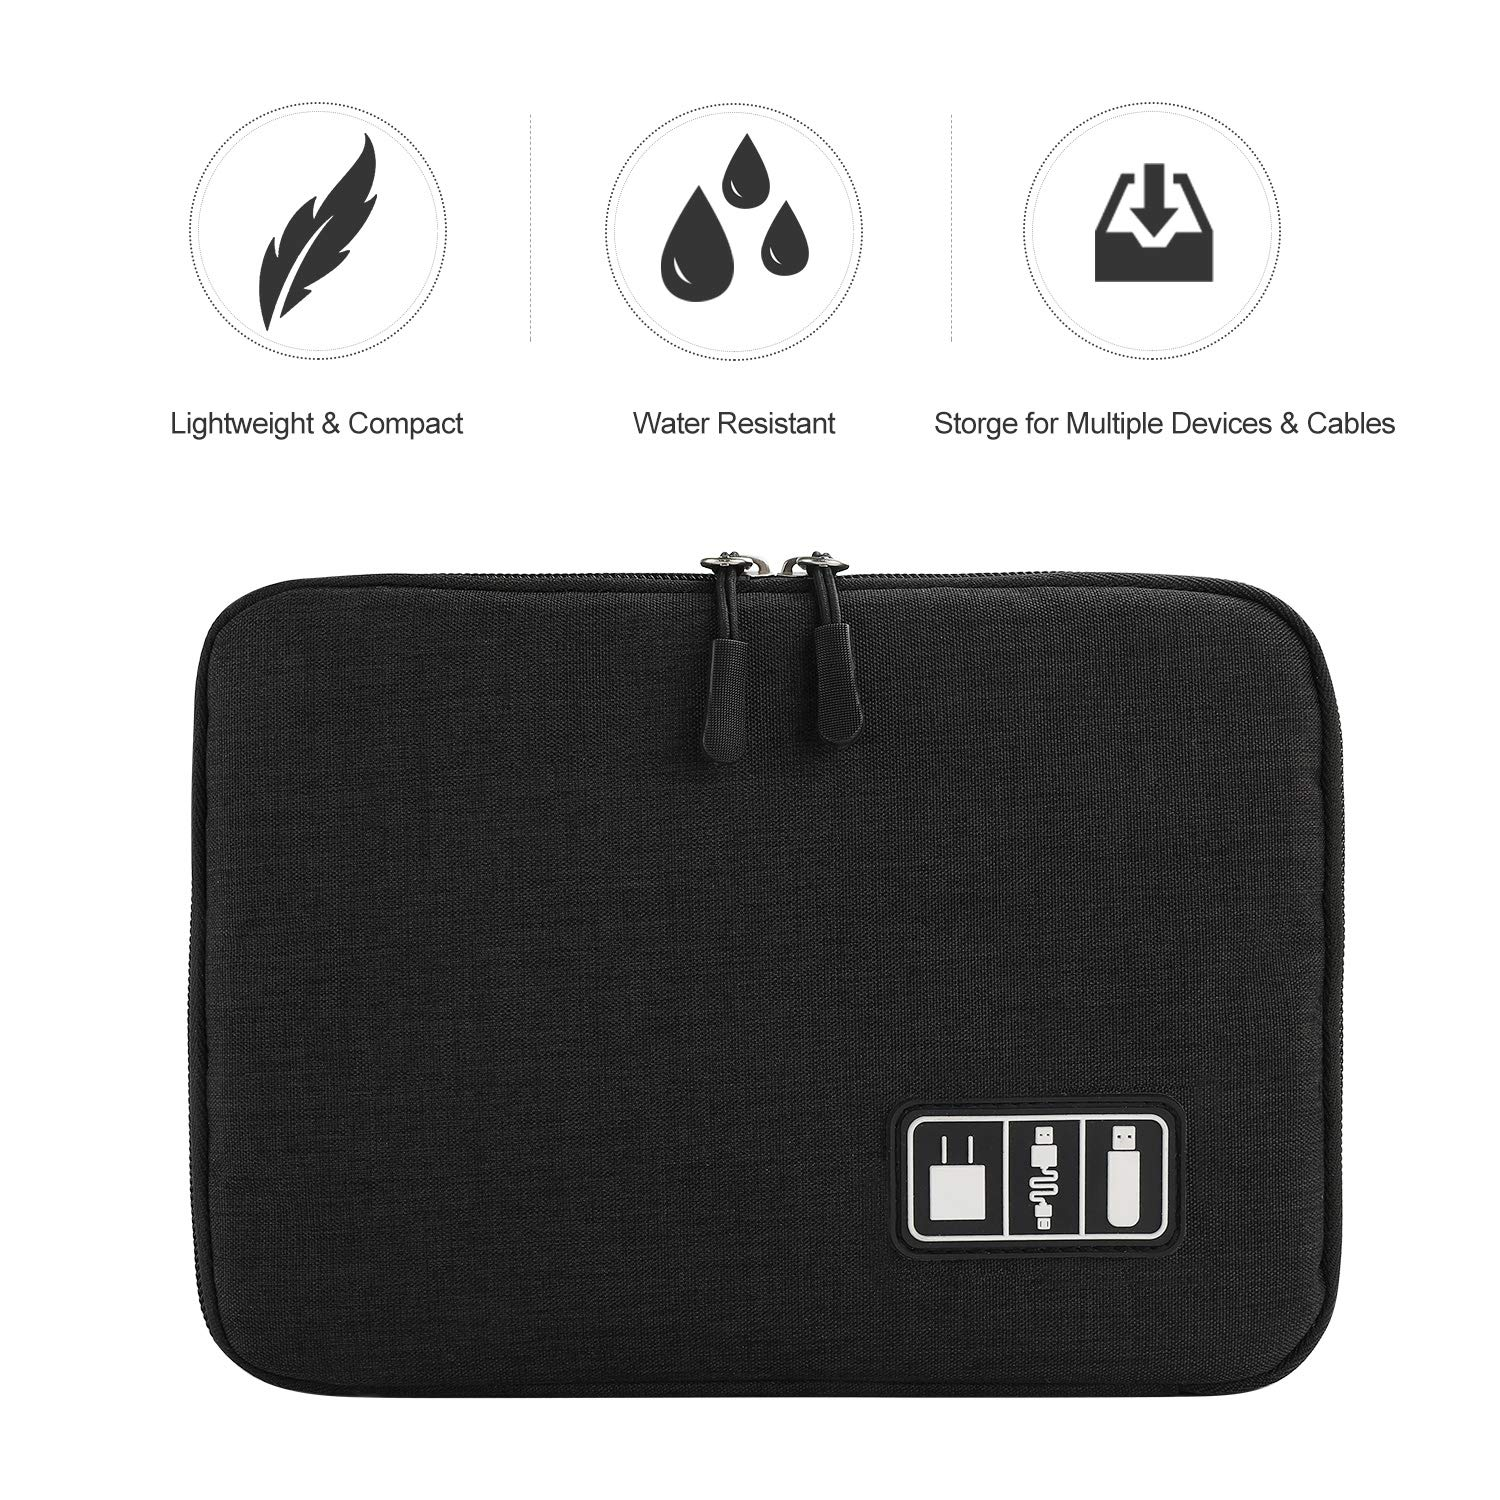 Electronics Organizer, Jelly Comb Electronic Accessories Cable Organizer Bag Waterproof Travel Cable Storage Bag for Charging Cable, Power Bank, iPad (Up to 11'' and More-Large(All Black) by Jelly Comb (Image #2)